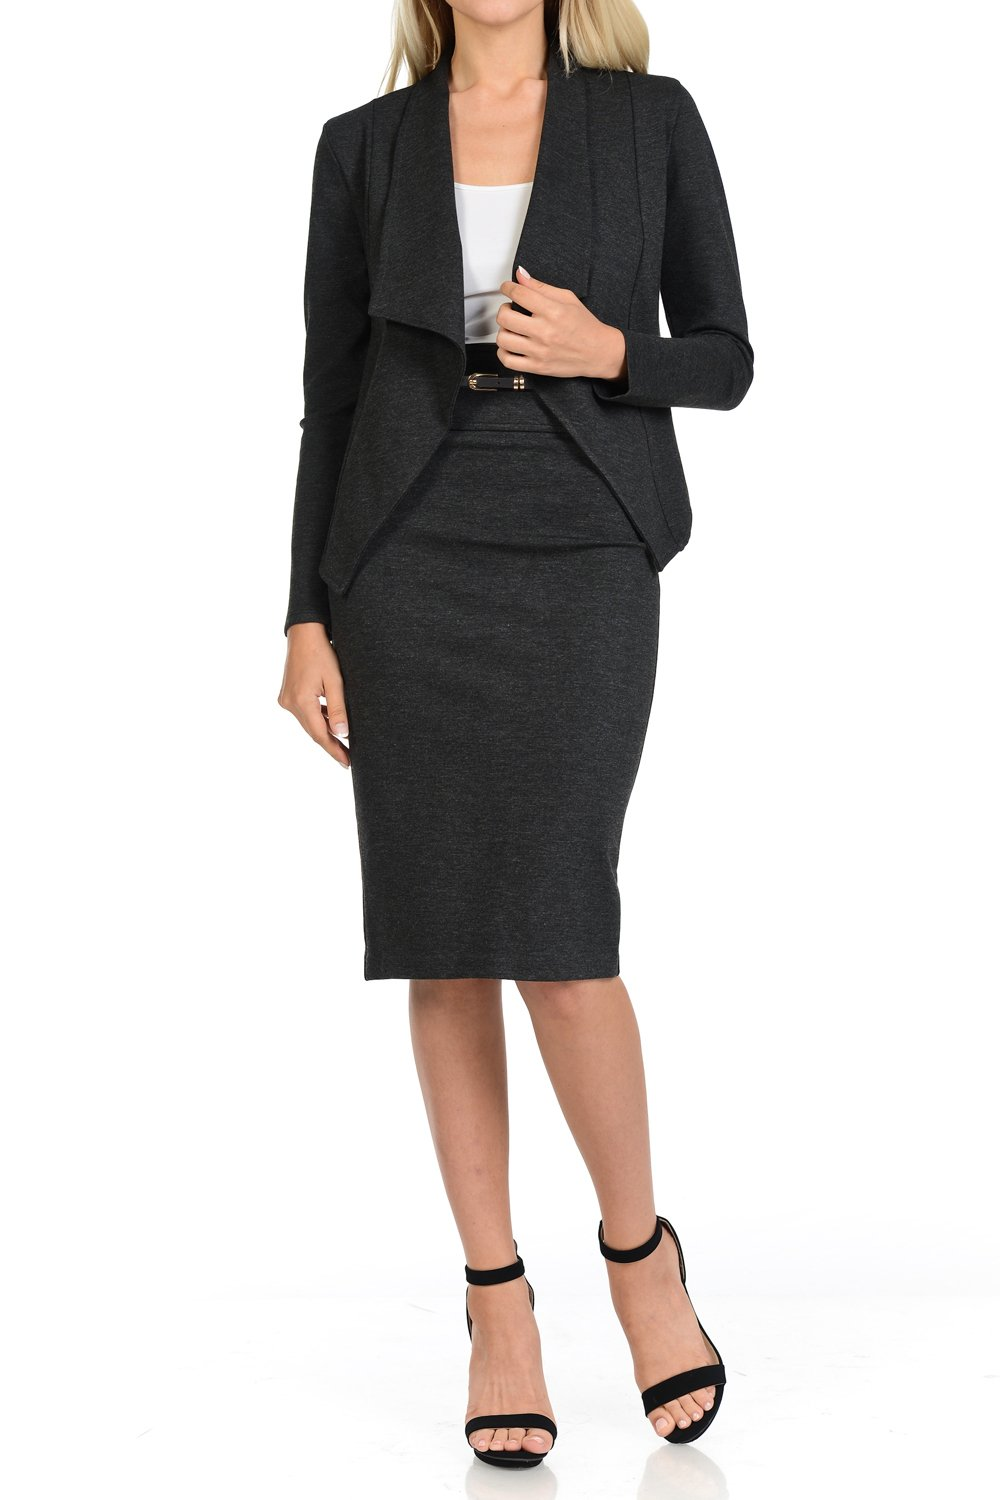 Sweethabit Womens Two Piece Wear to Work Solid Blazer and Pencil Silhouette Skirt,Pants Set (XLarge, 3087_Charcoal)